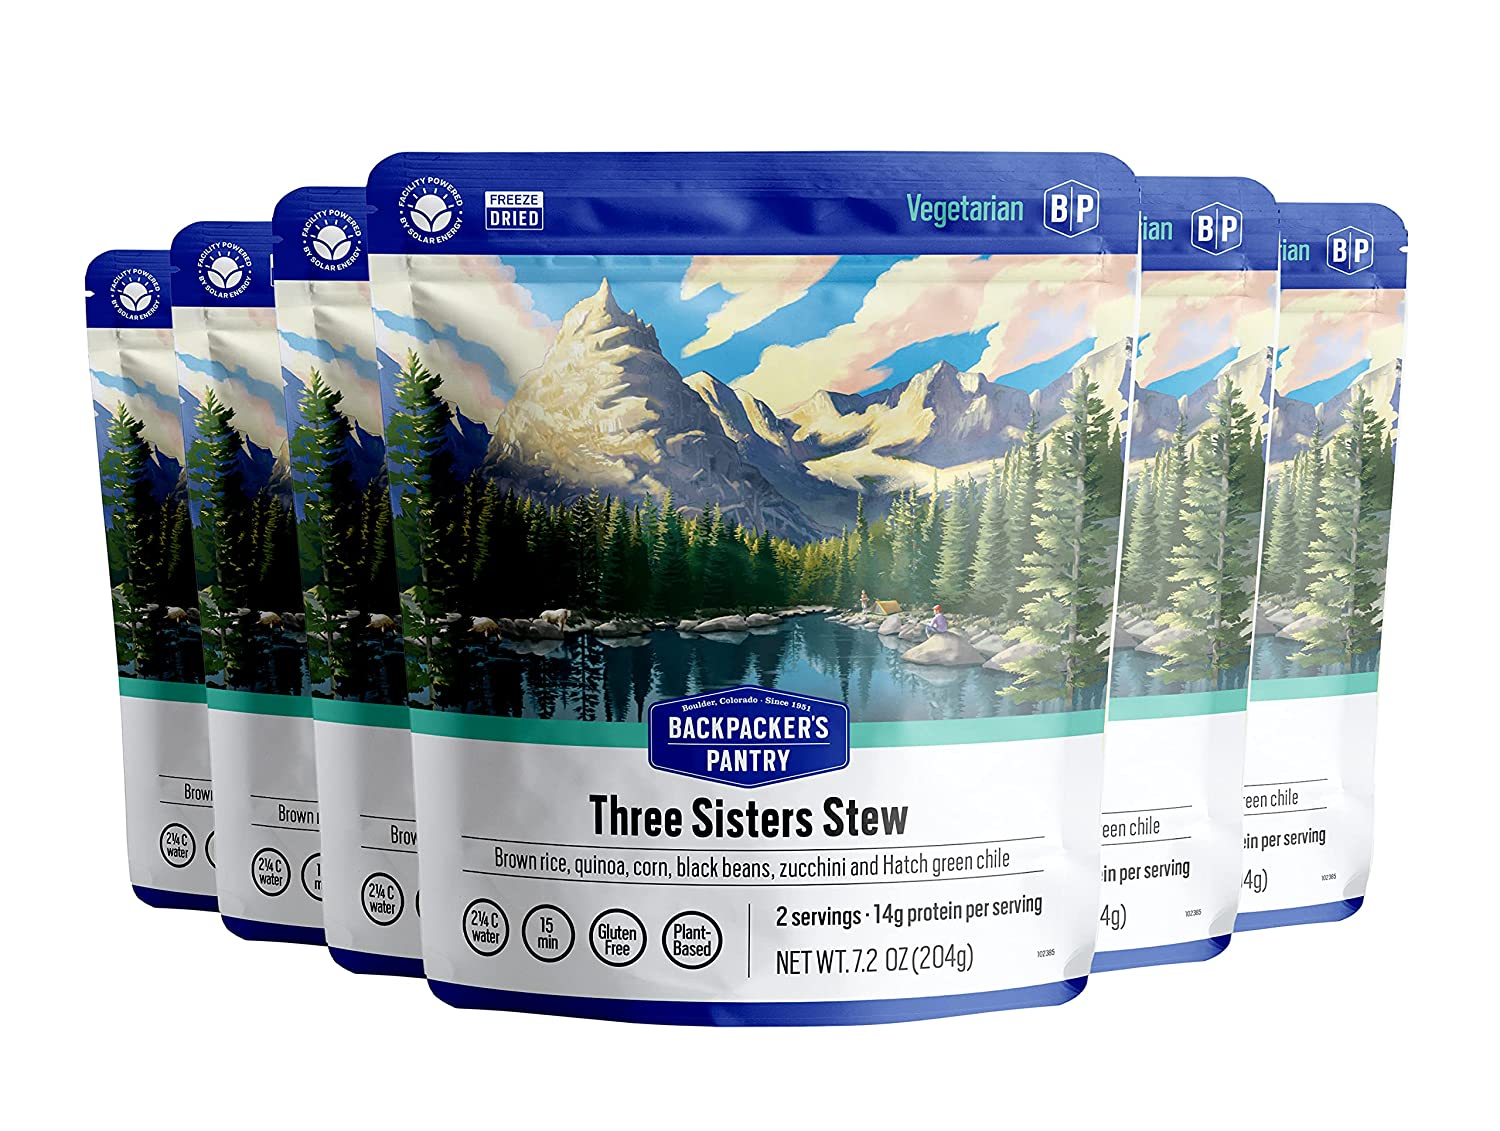 Backpacker's Pantry Three Sisters Stew | Freeze Dried Backpacking & Camping Food | Emergency Food | 28 Grams of Protein, Vegan, Gluten-Free | 6 Count